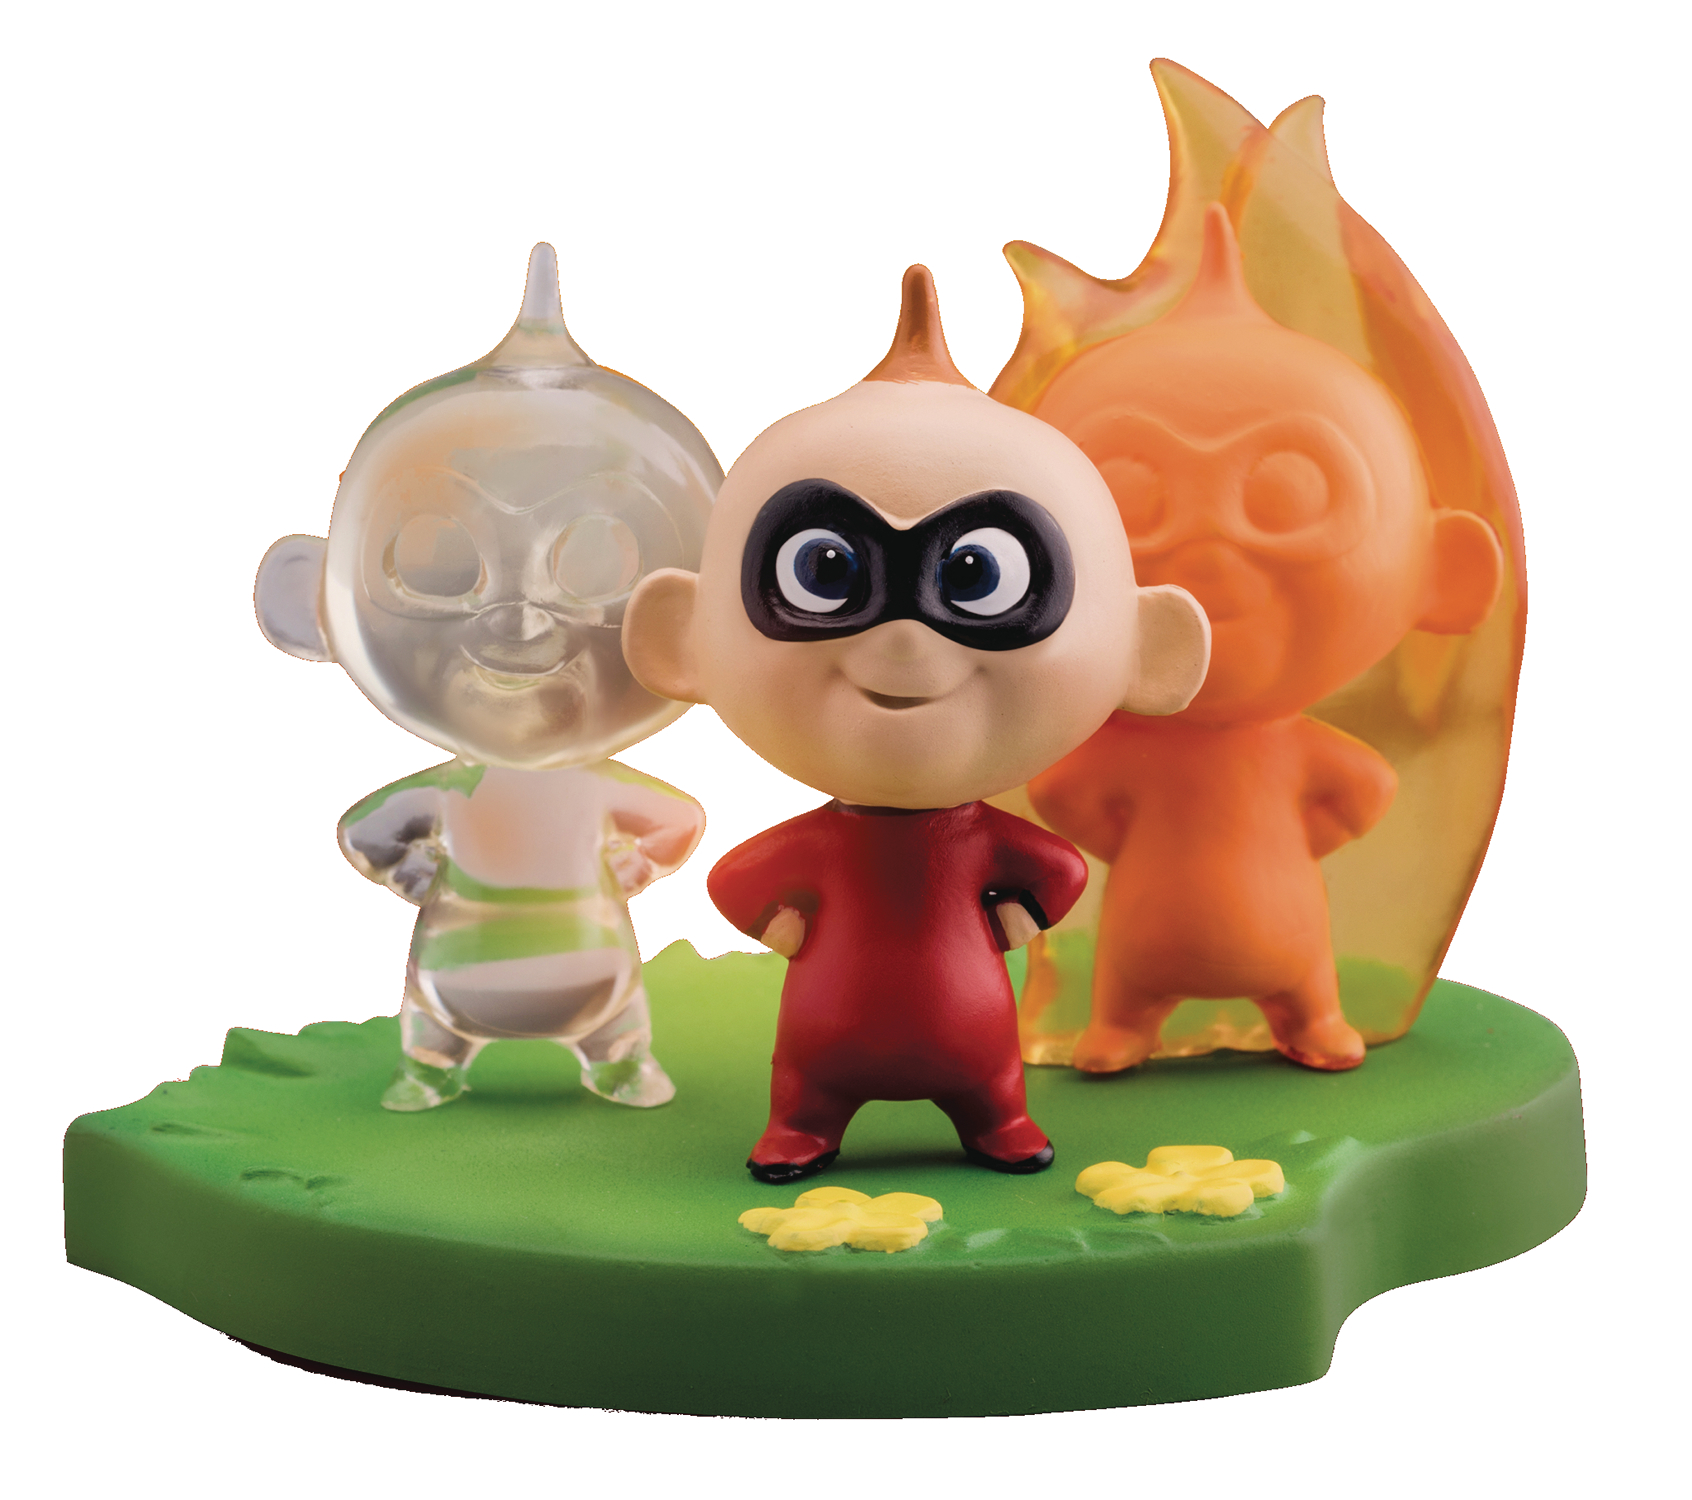 INCREDIBLES MEA-005 JACK JACK PX FIG